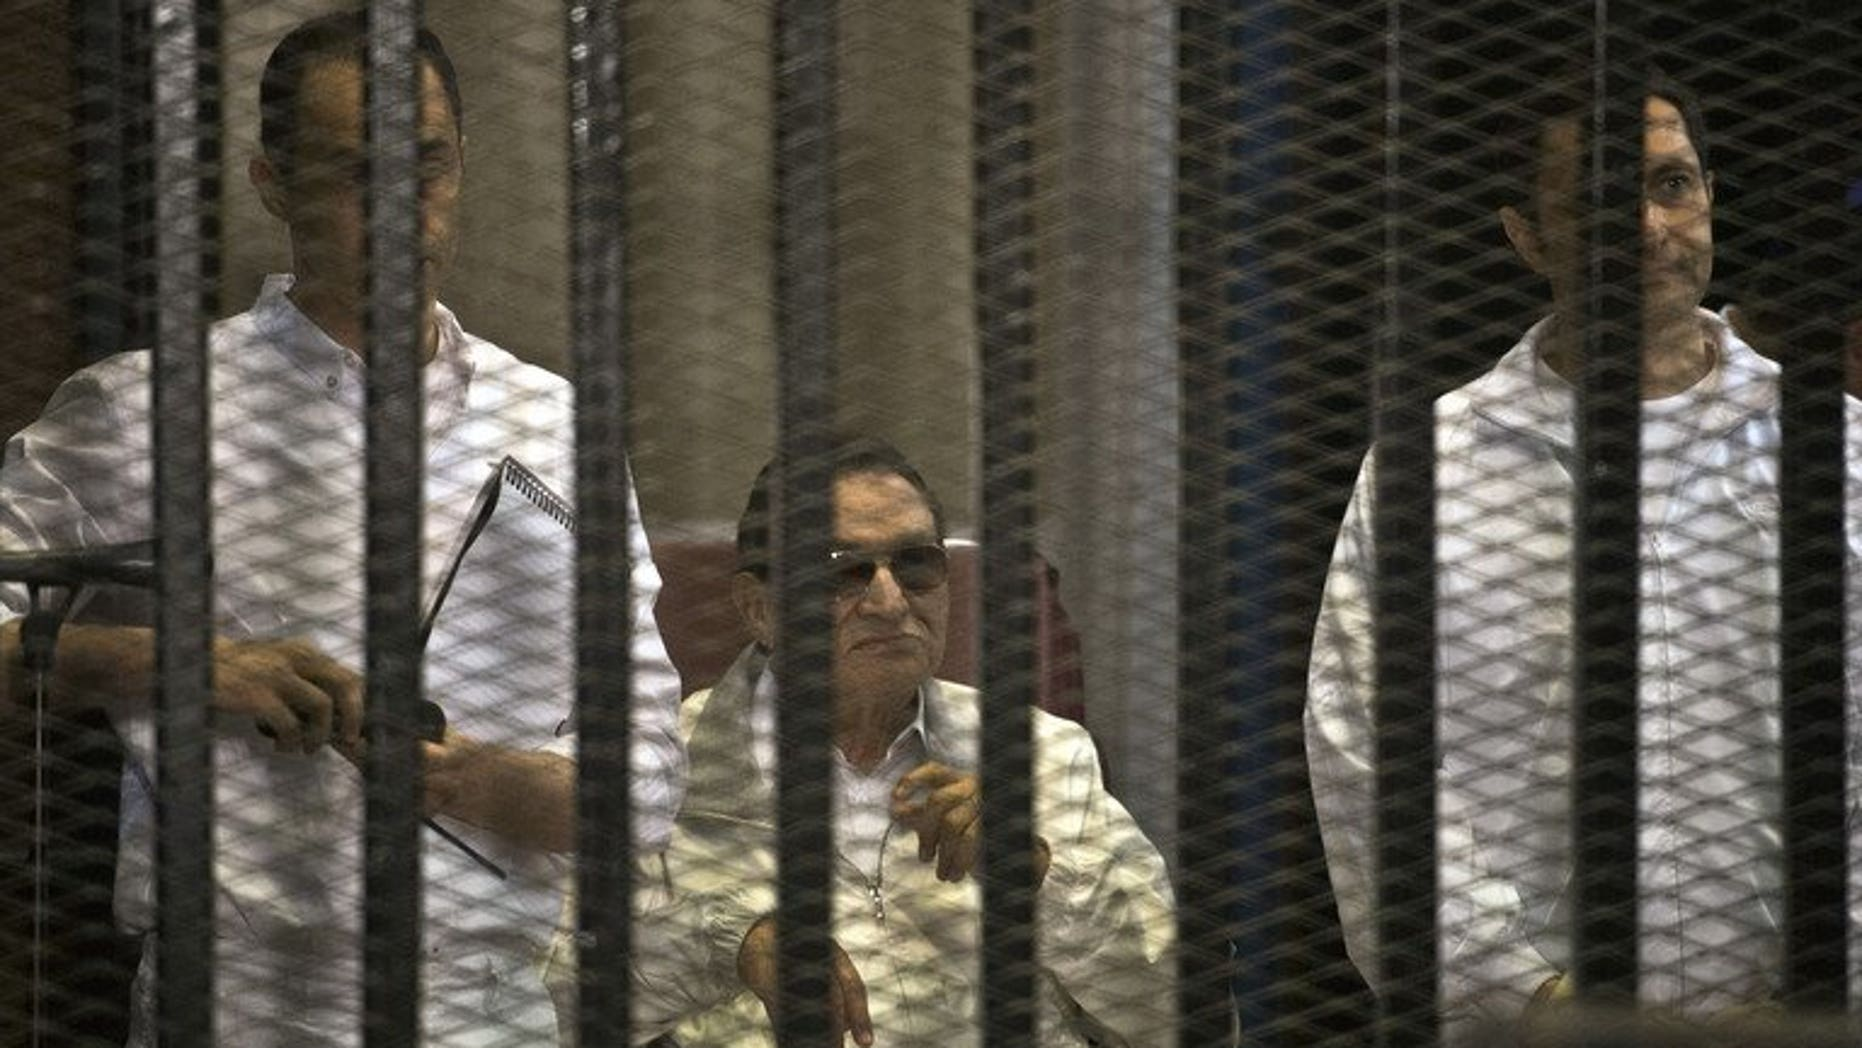 Ousted Egyptian president Hosni Mubarak (C) and his two sons Alaa (R) and Gamal during their retrial at the Police Academy in Cairo on June 8, 2013. Mubarak will face a new court hearing on Wednesday during which his lawyer will seek his release from prison, judicial sources said